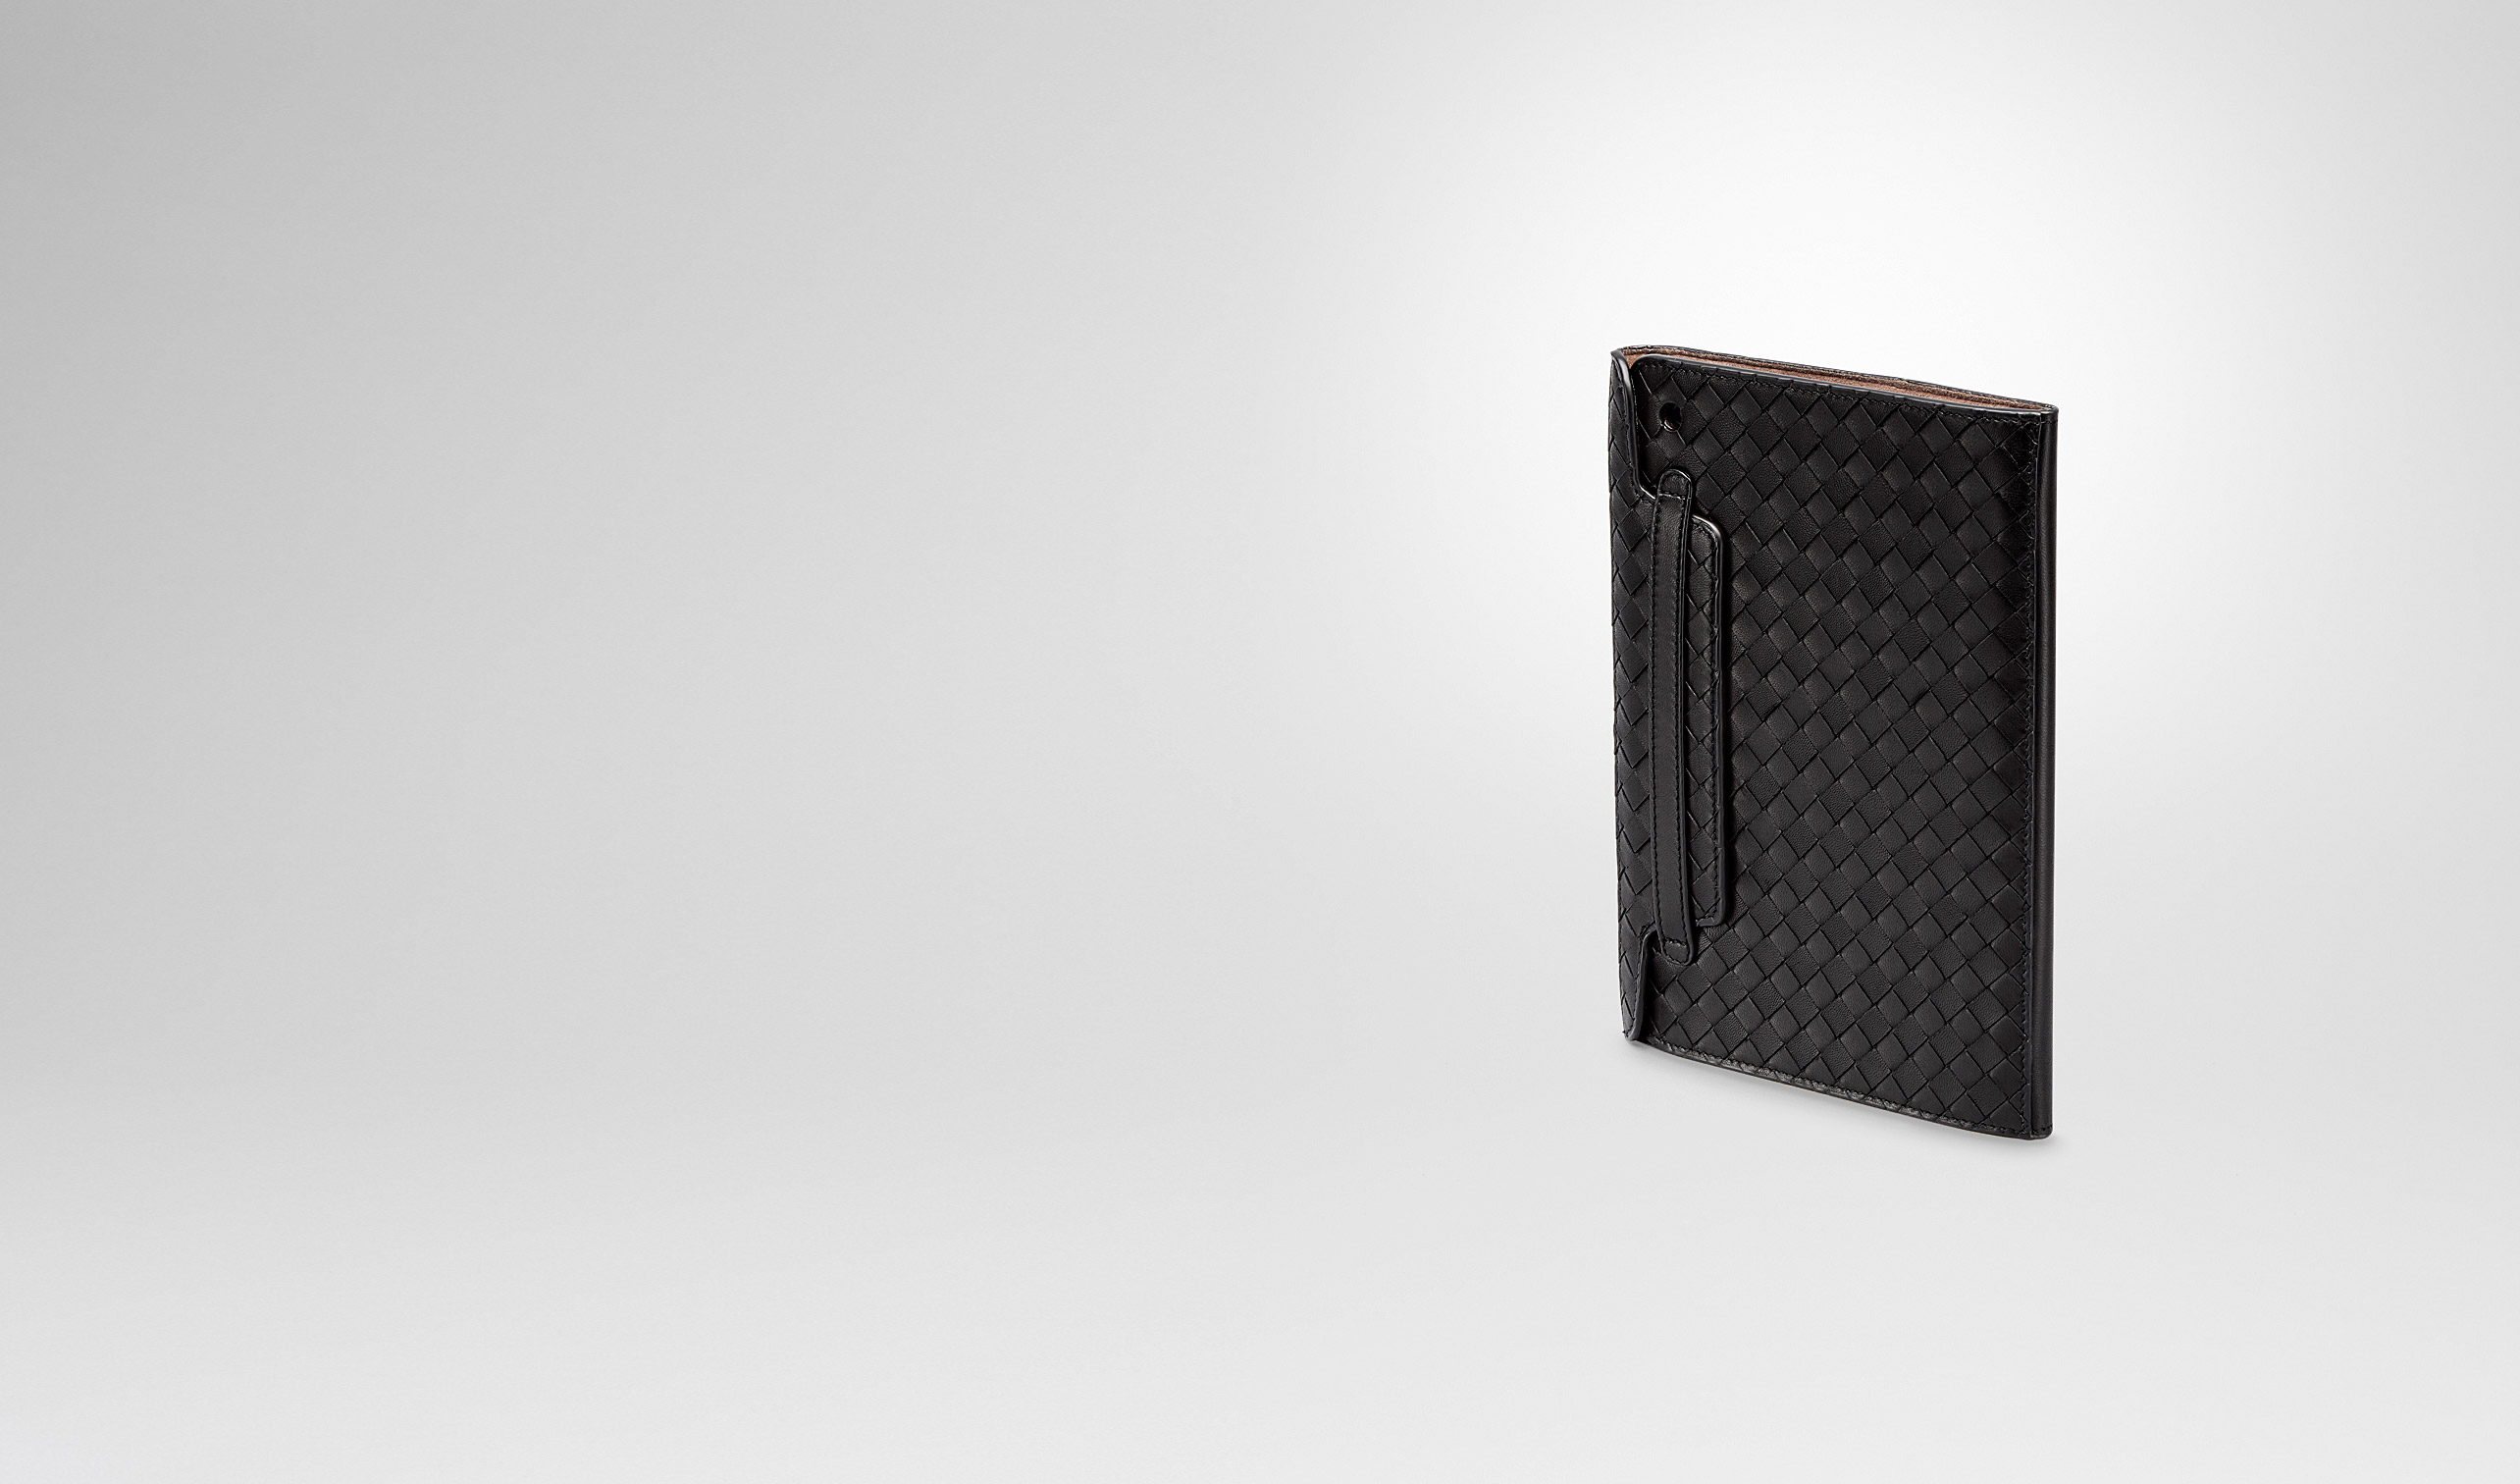 BOTTEGA VENETA Other Leather Accessory E MINI IPAD CASE IN NERO INTRECCIATO NAPPA pl